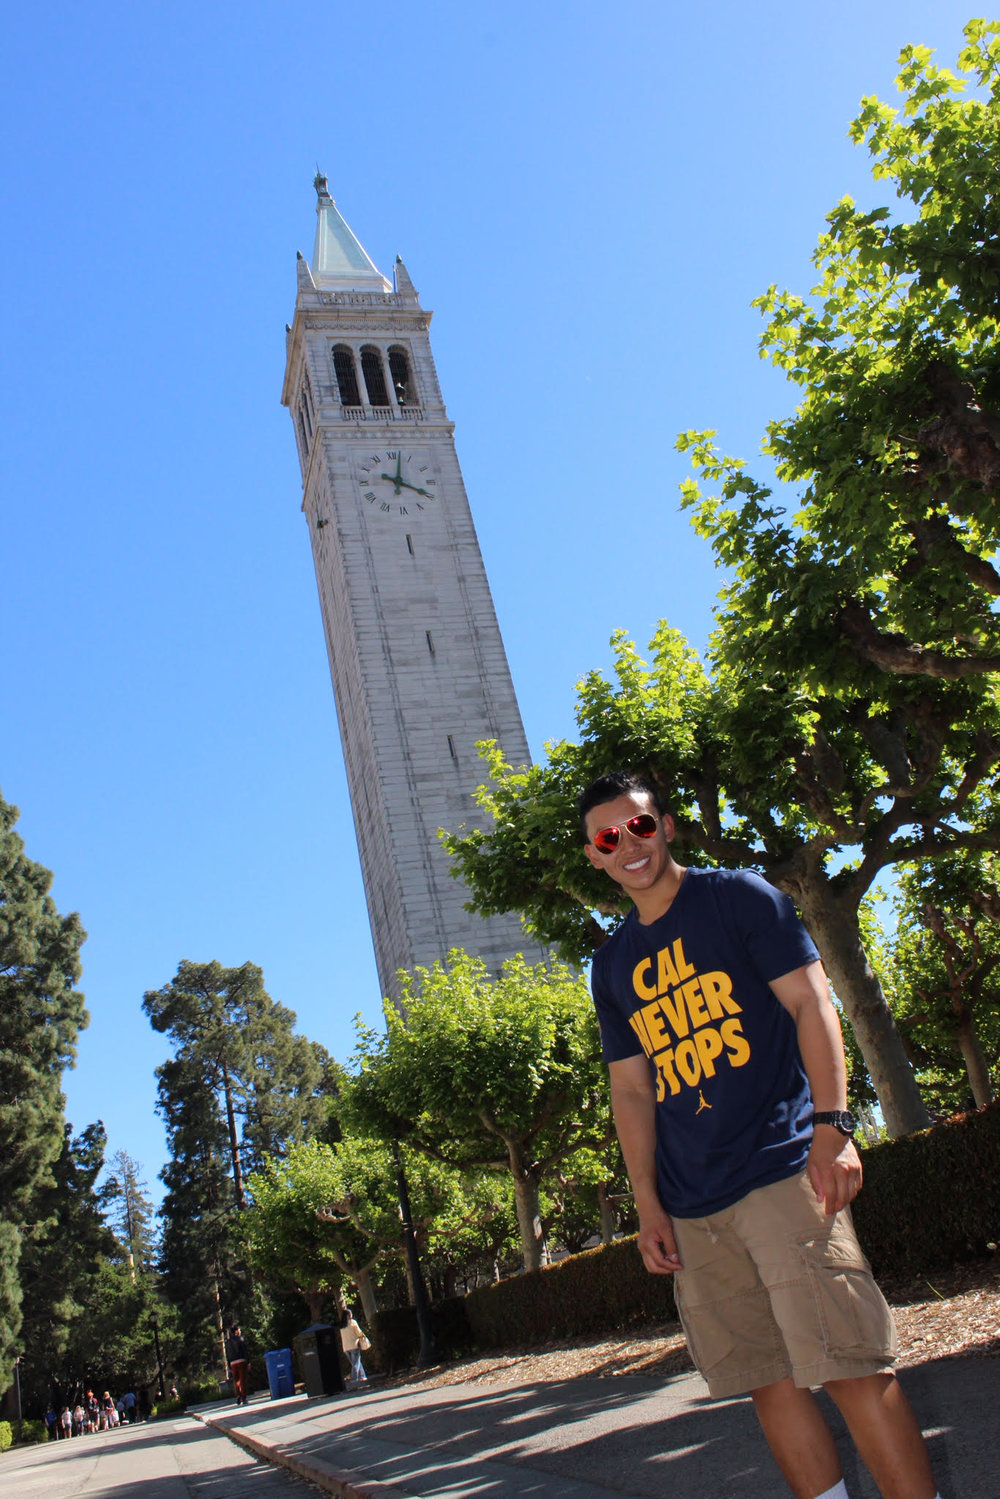 Justin Mariano is studying biology and global health at University of California – Berkeley. He plans to become a medical doctor.